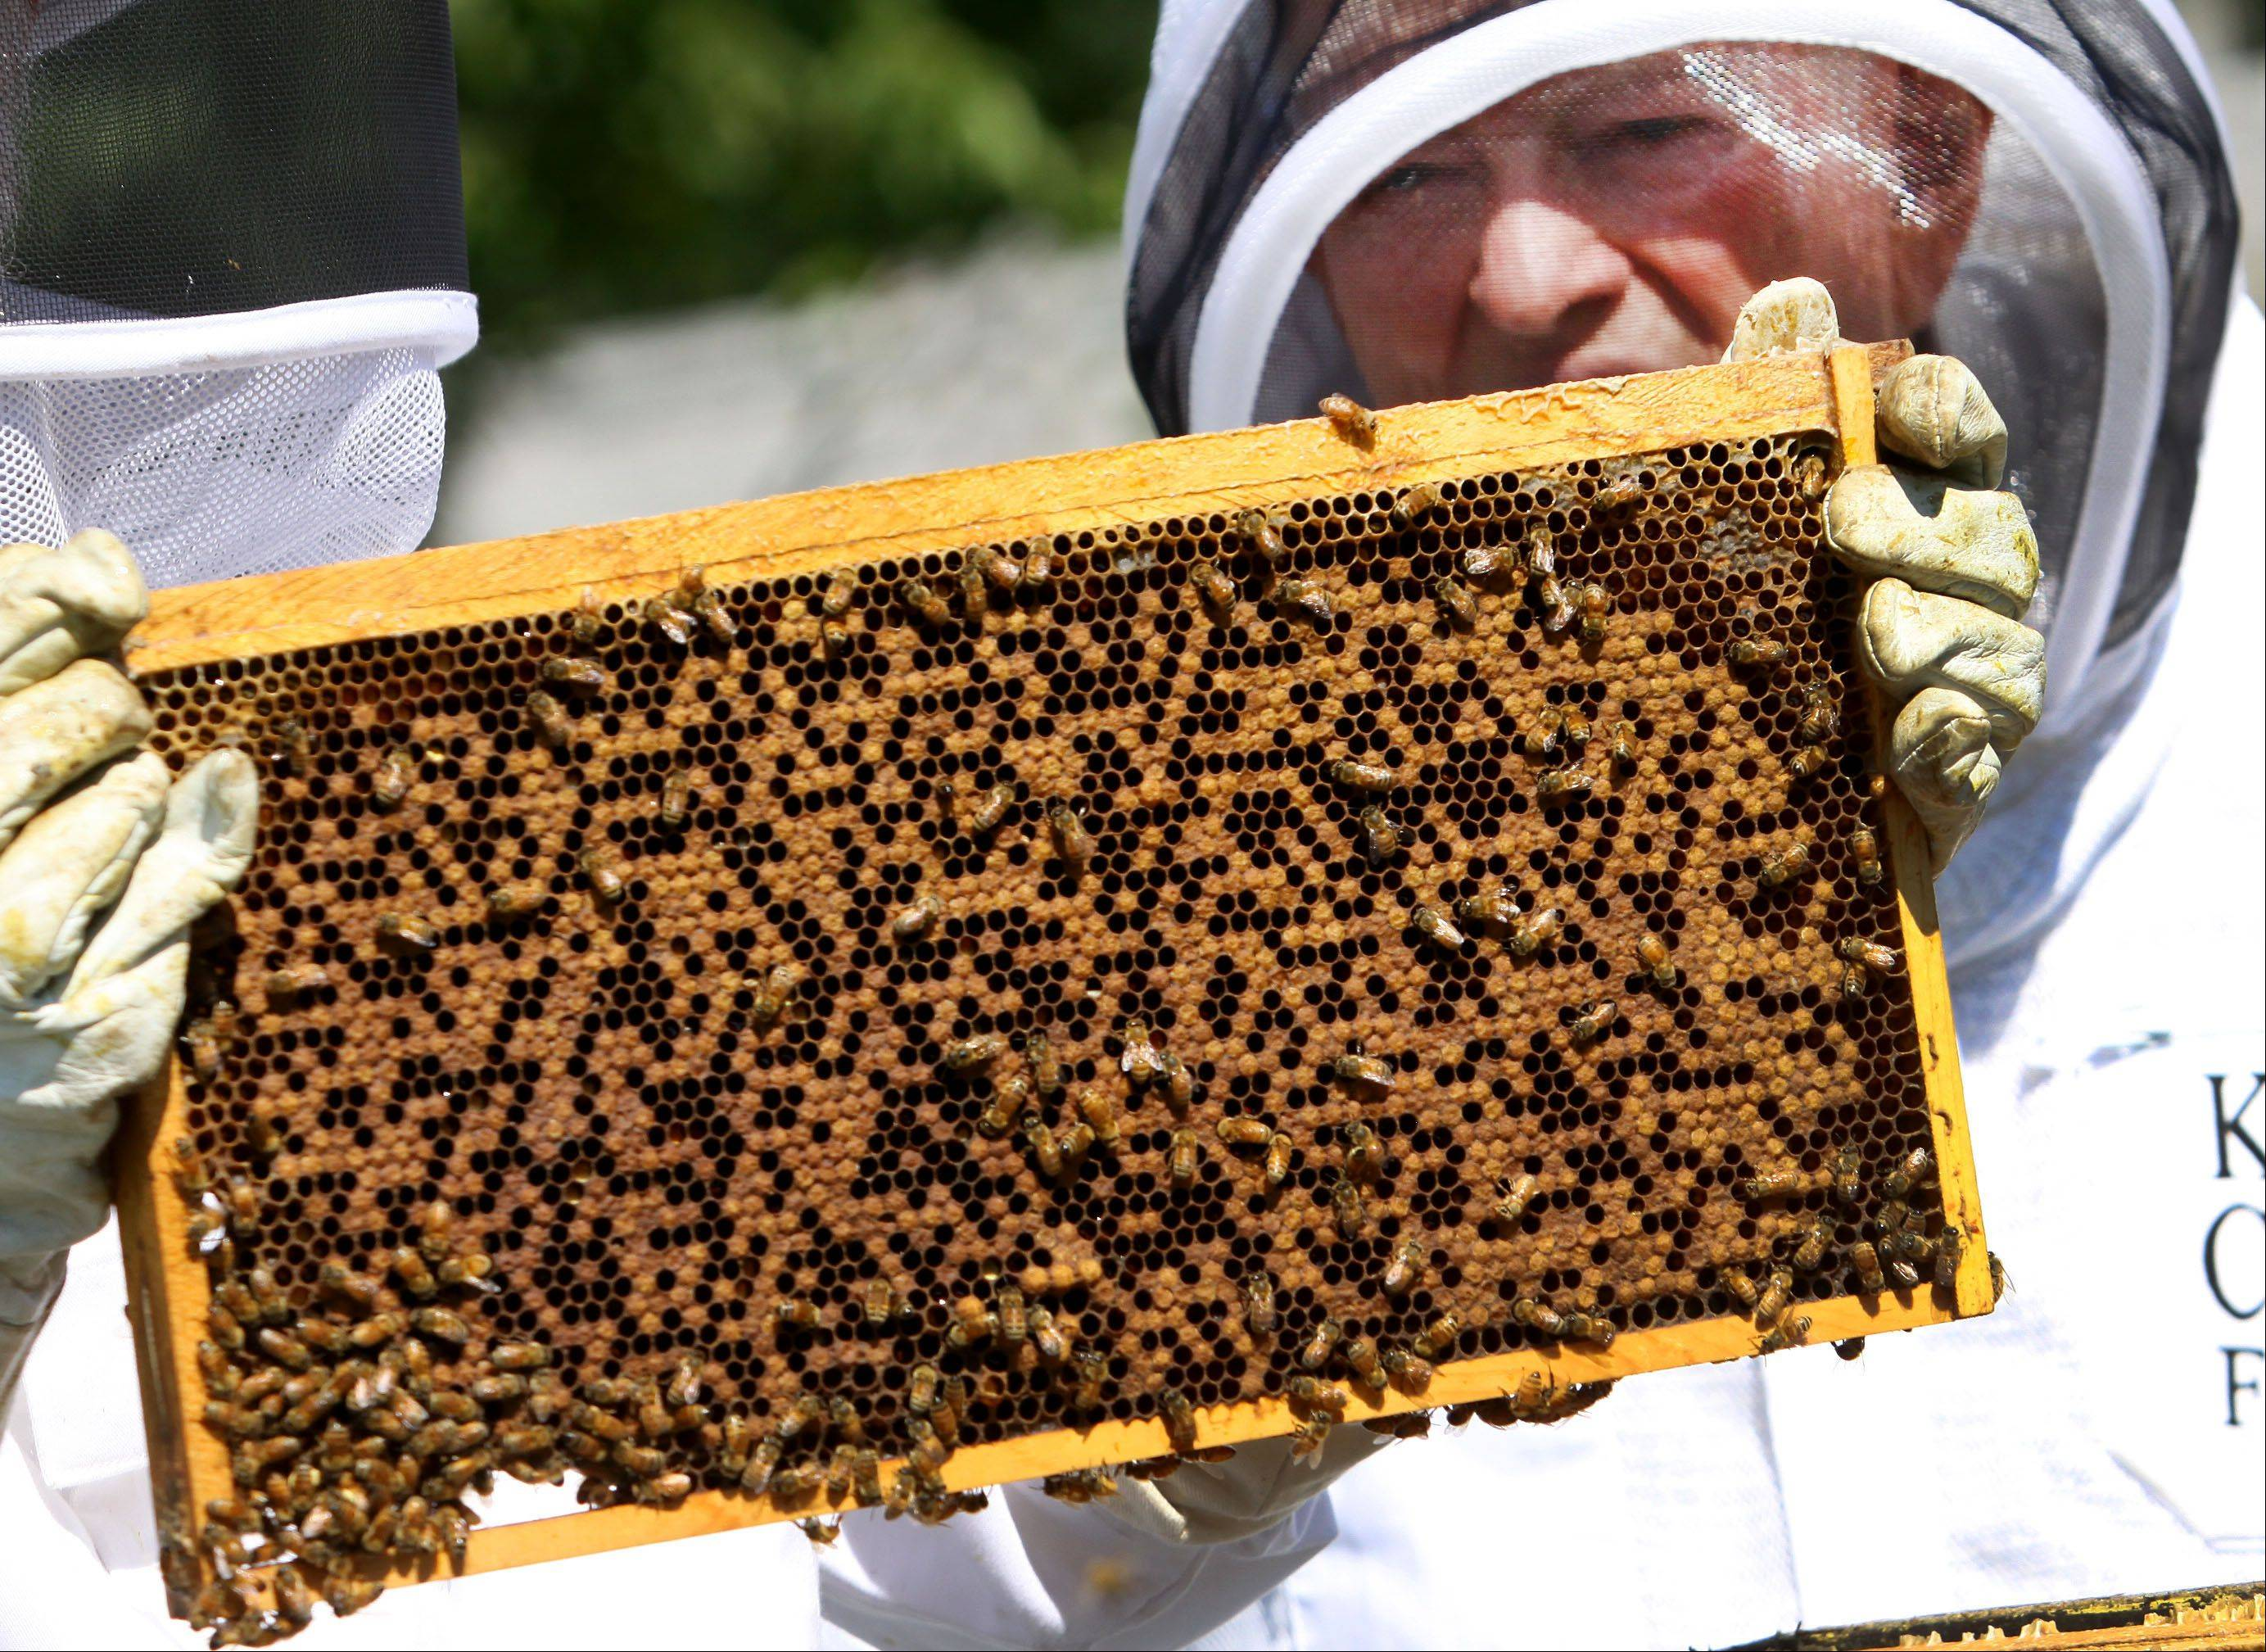 Moving Picture: Kline Creek beekeeper in 30th year